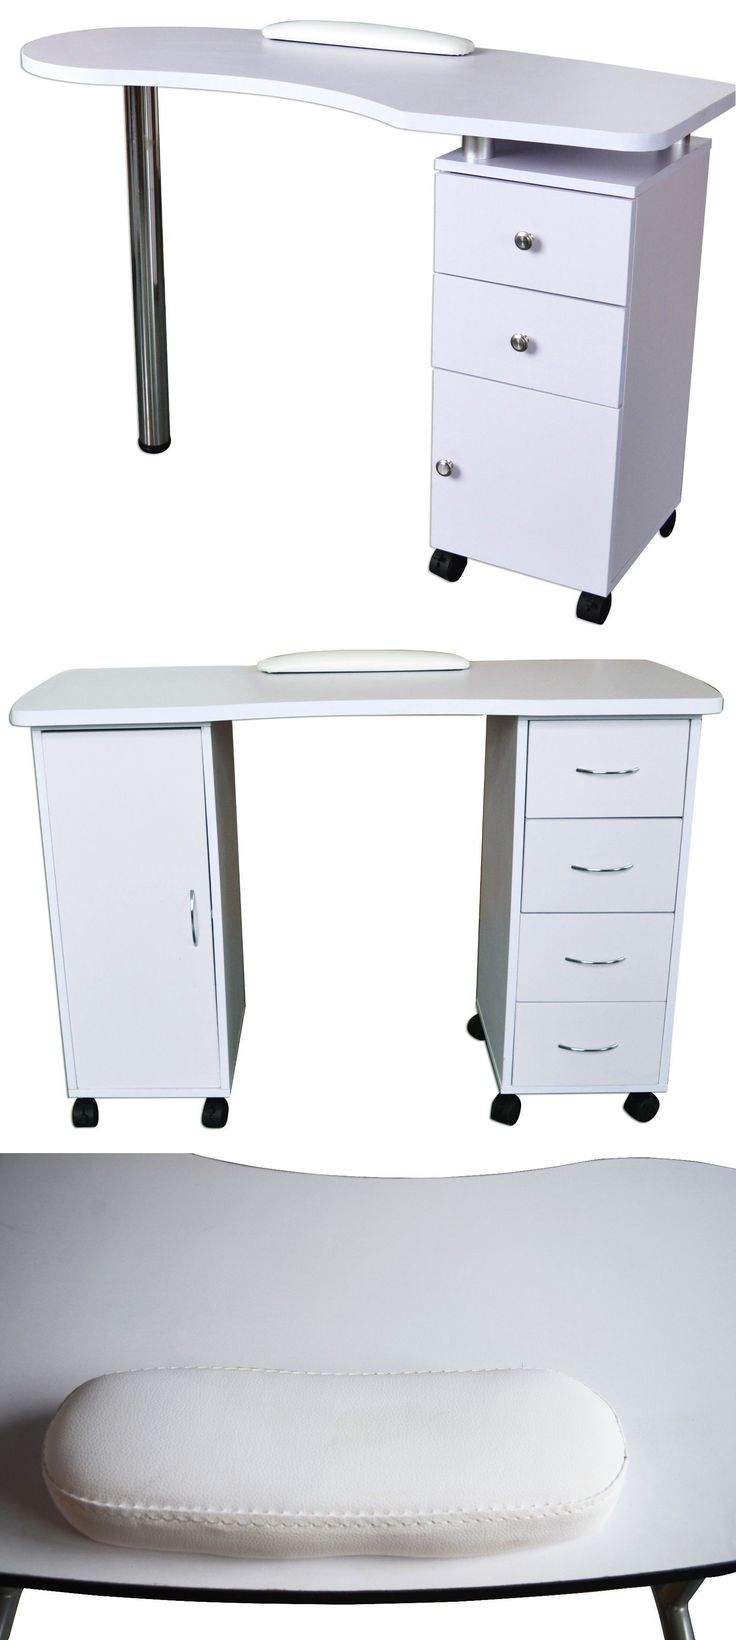 Other Nail Care: Slightly Purple Manicure Nail Table Station Desk Salon Beauty Equipment 400/600 BUY IT NOW ONLY: $199.99